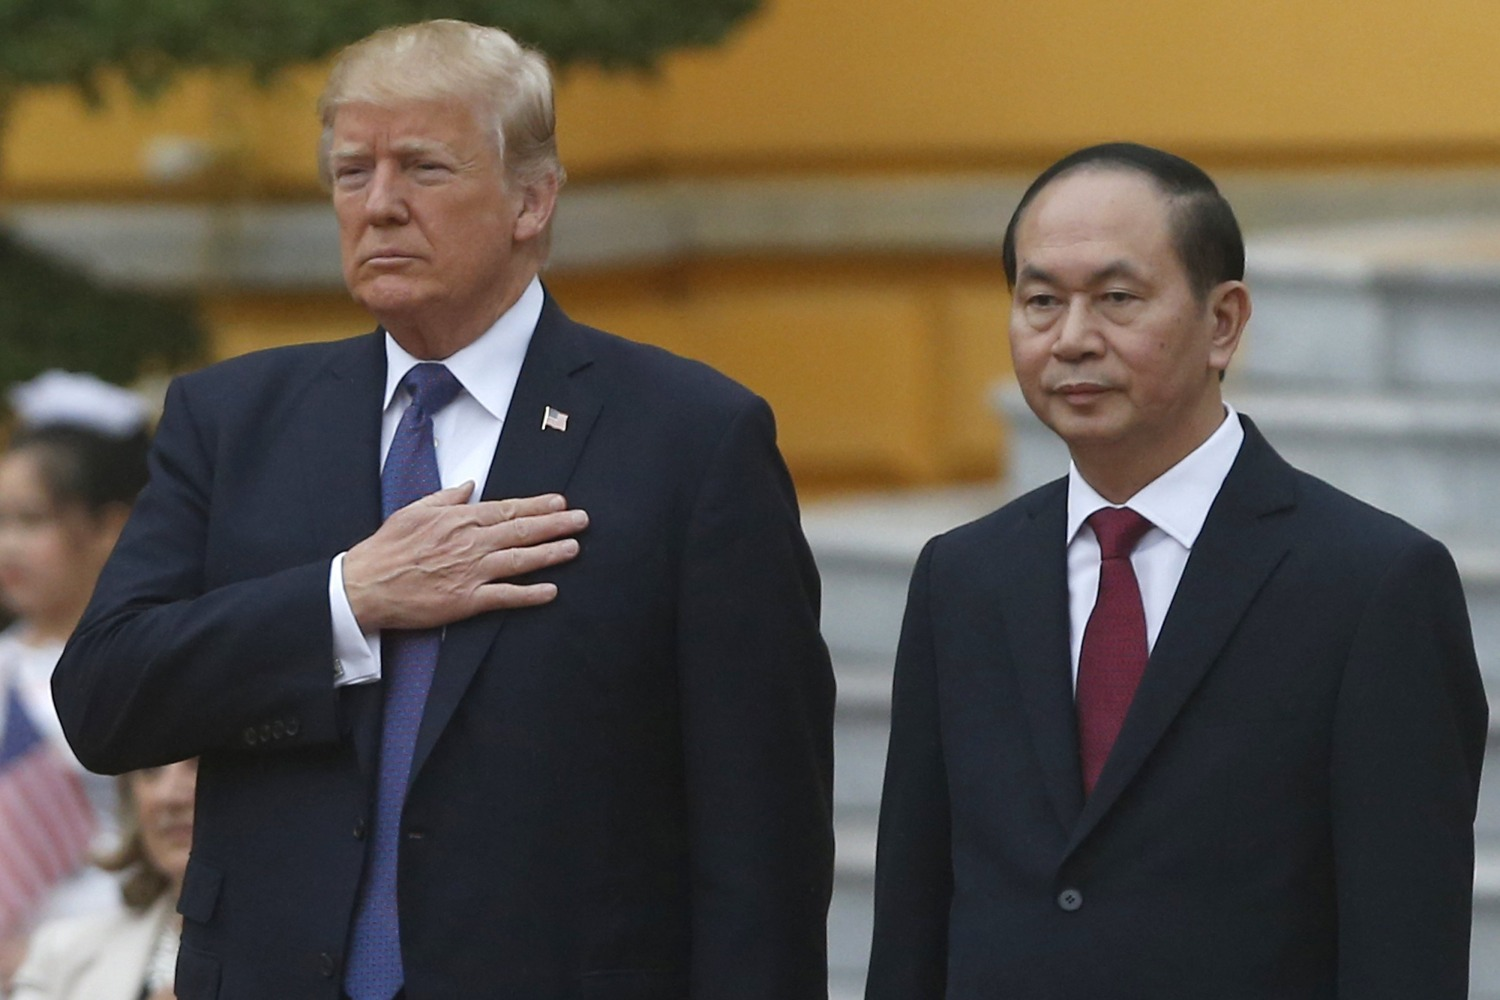 Trump asked Xi to look at cases of UCLA basketball players